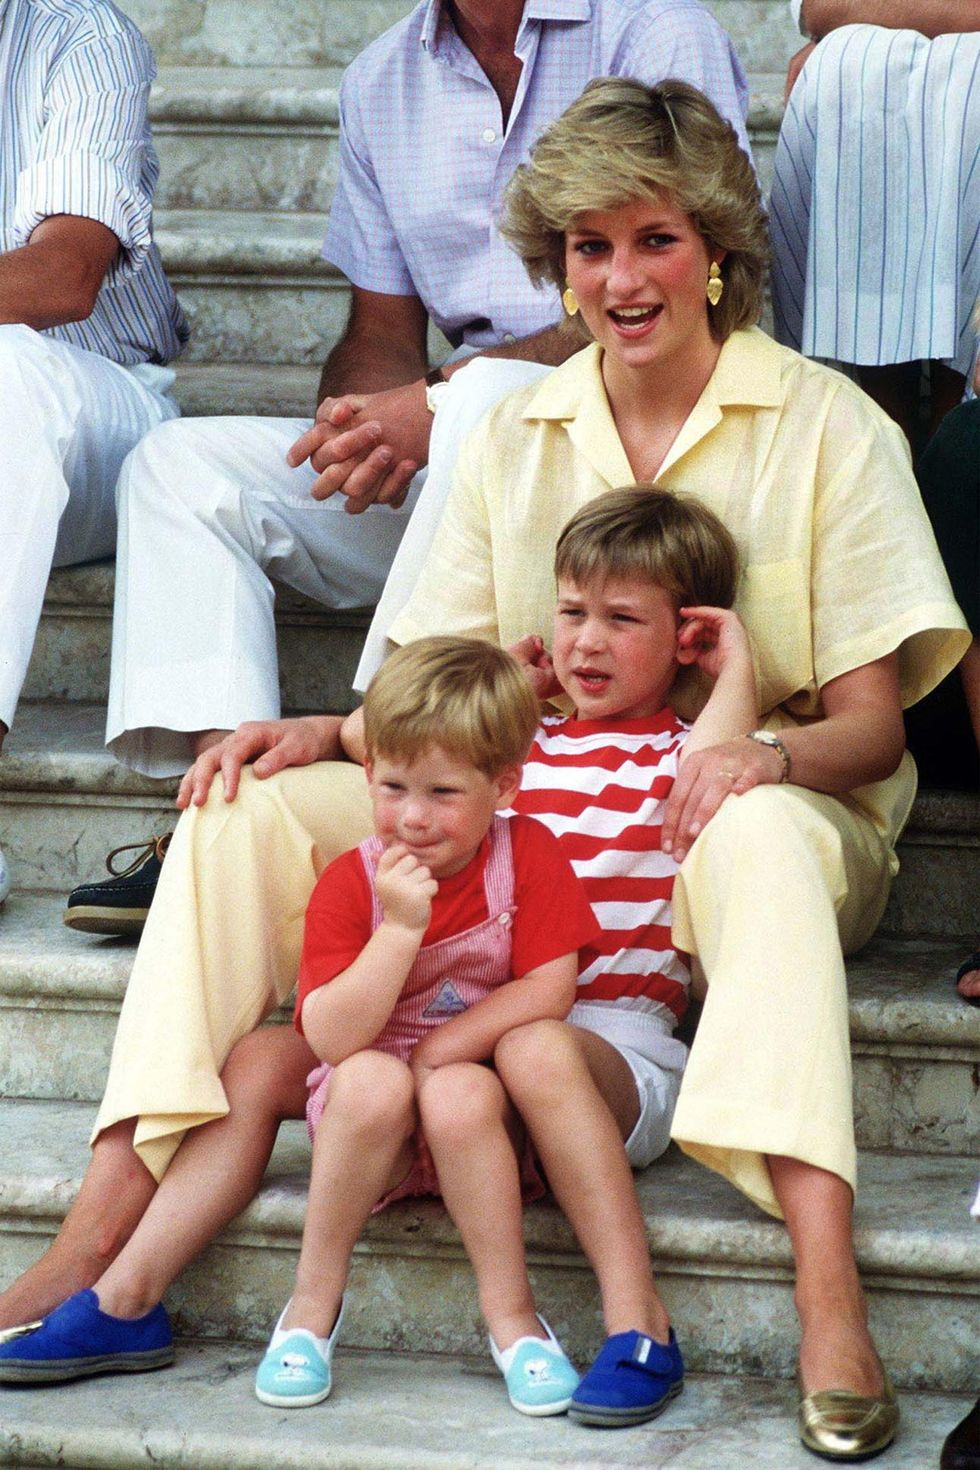 Princess Diana and her children during the period at the Spanish palace